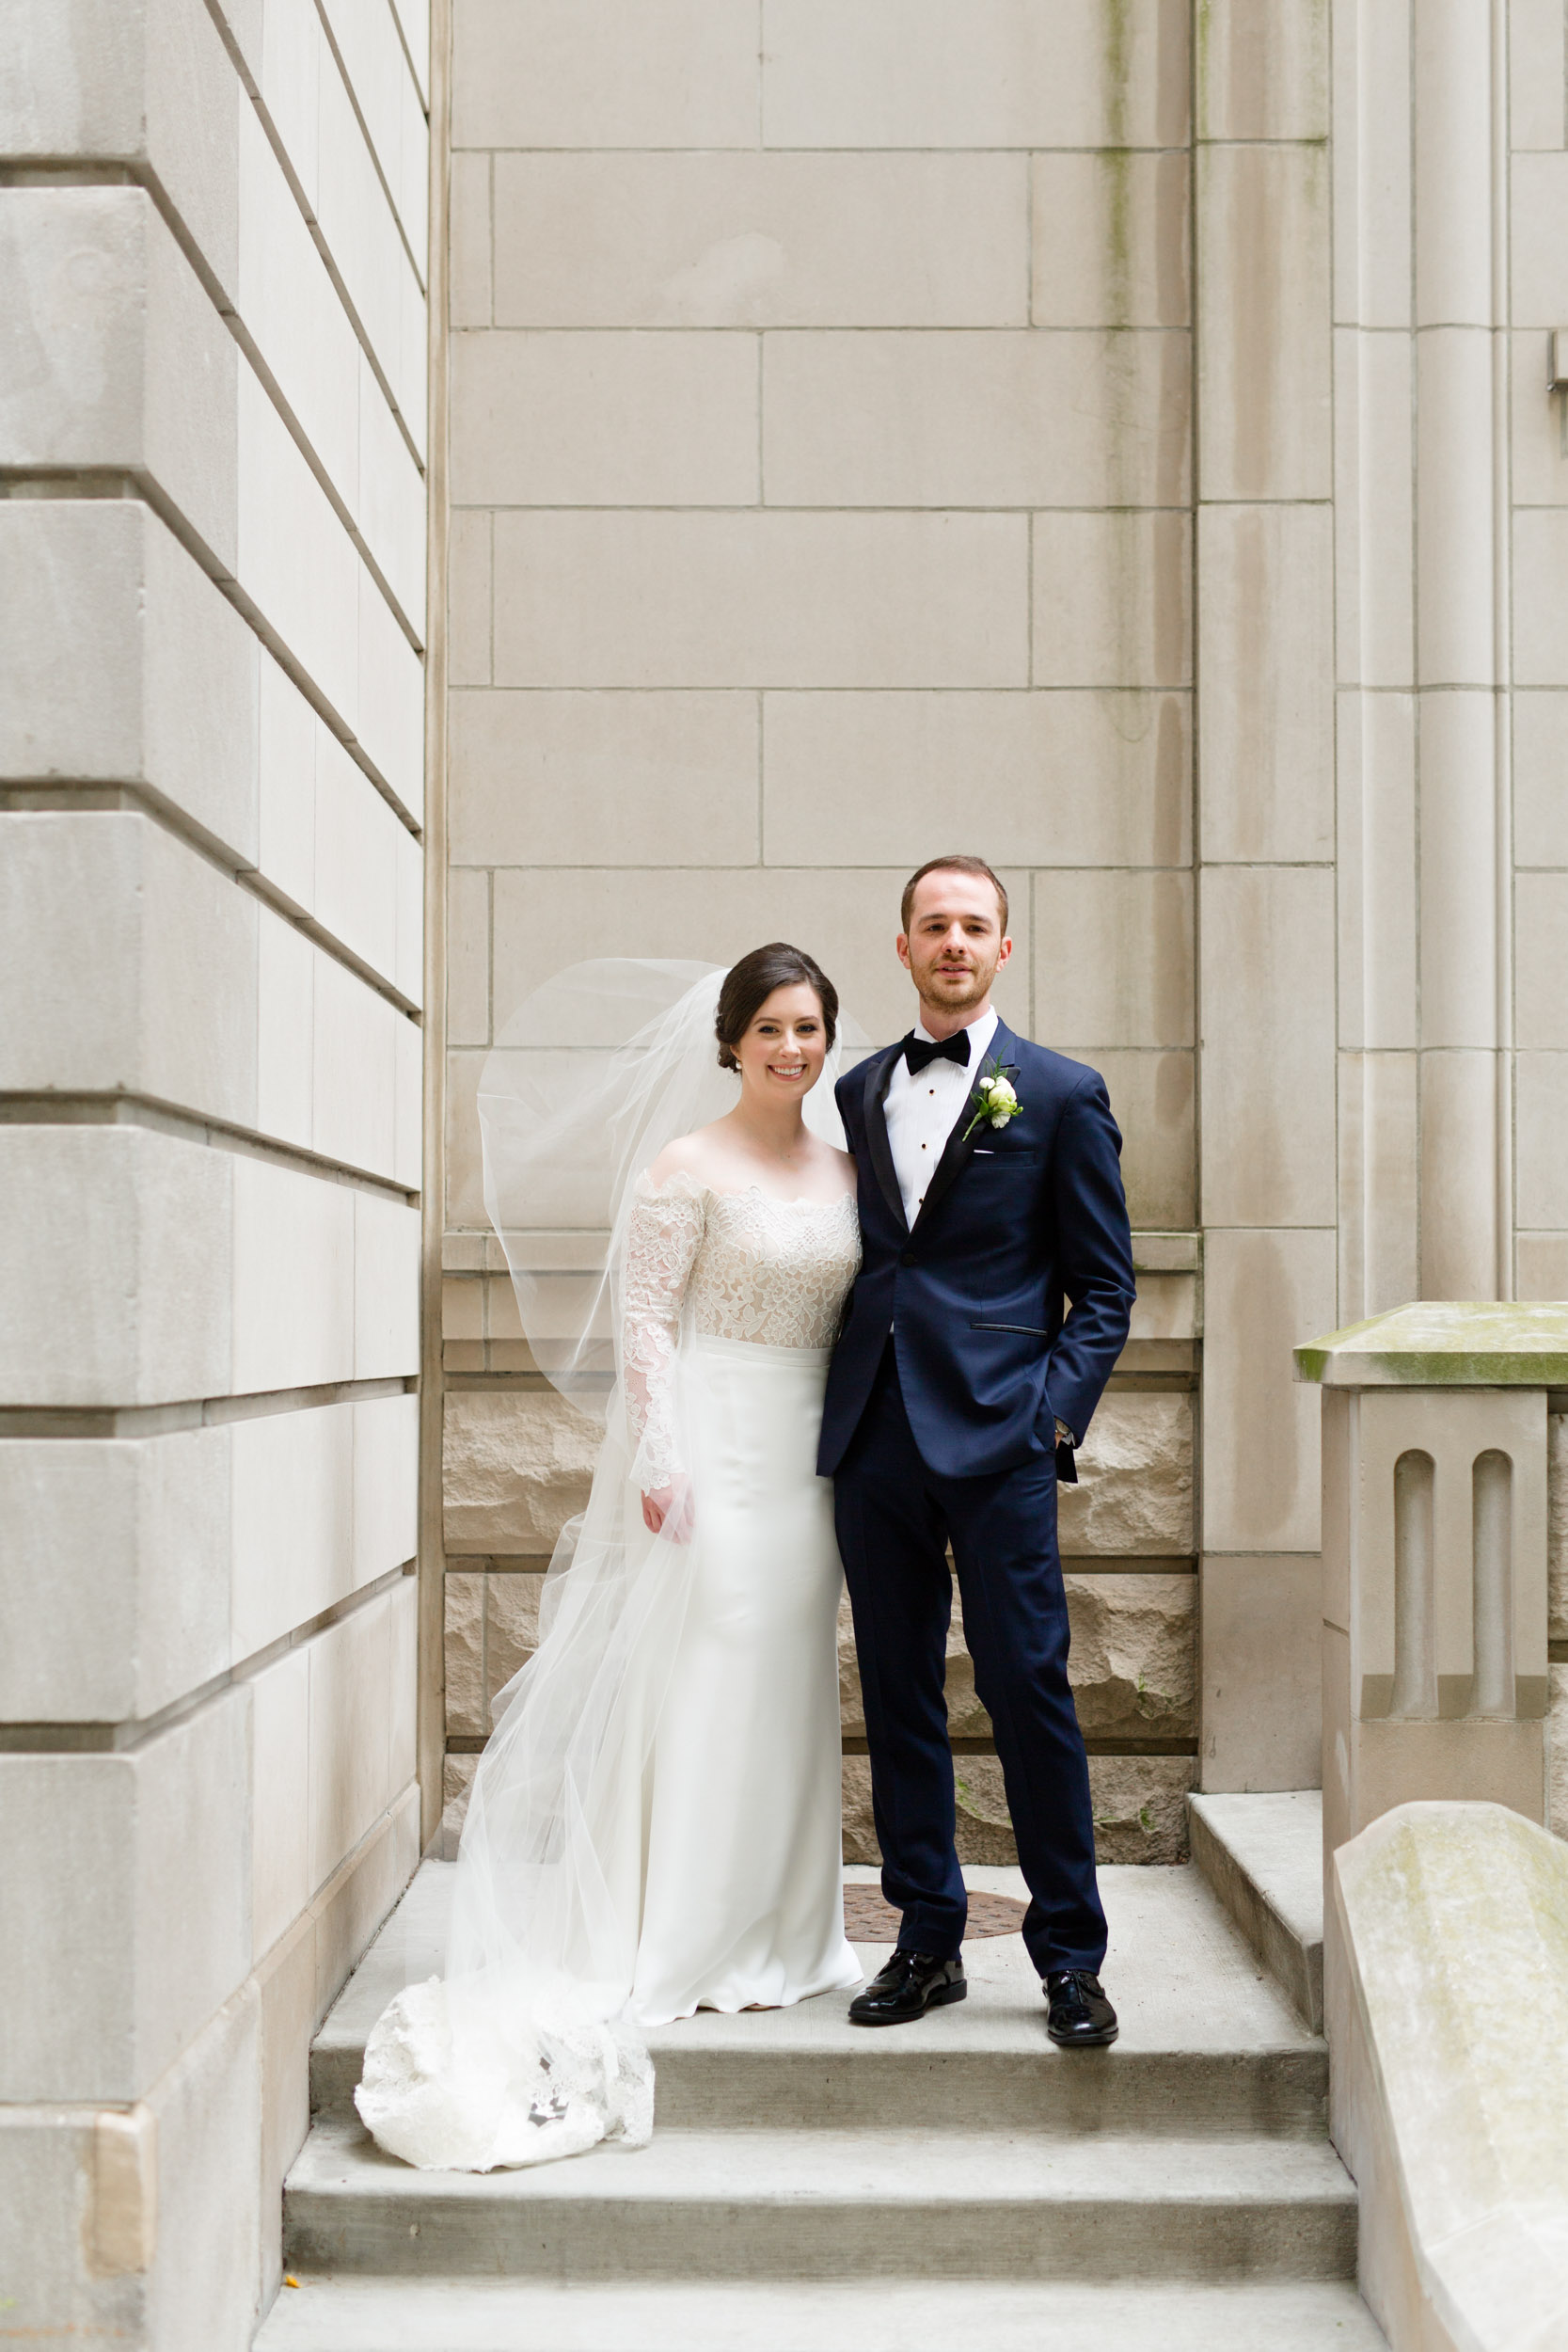 Bride and groom on wedding day in Chicago